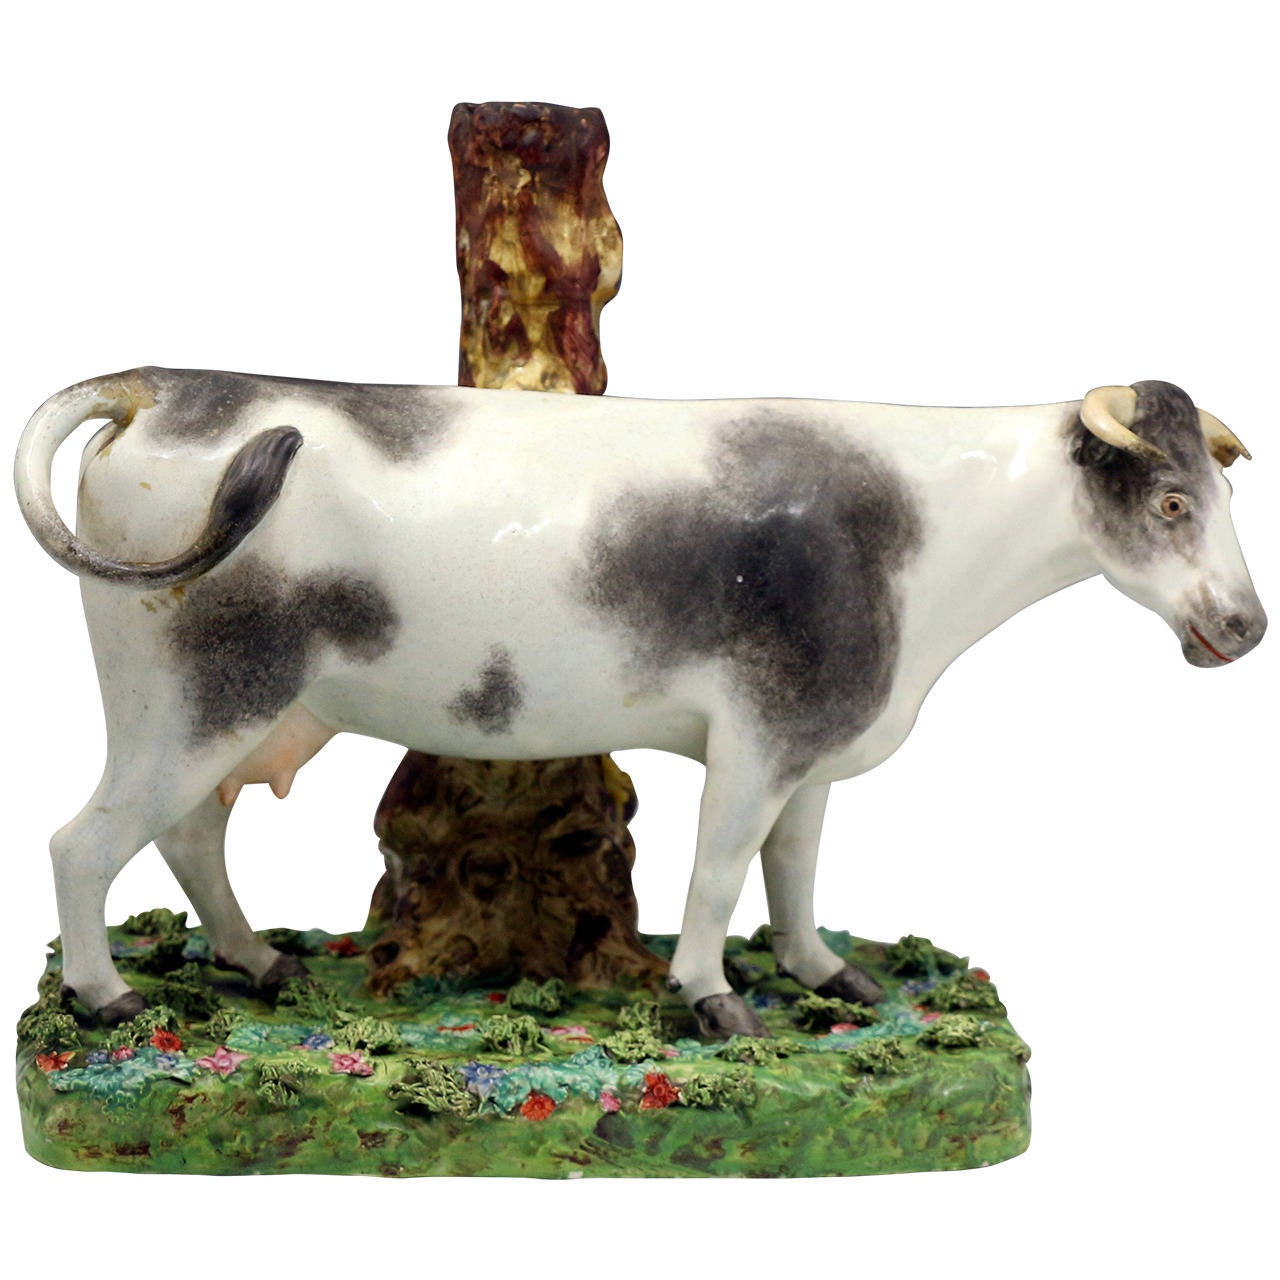 Massive Staffordshire Pearlware Pottery Figure of a Standing Cow on Colored Base 1